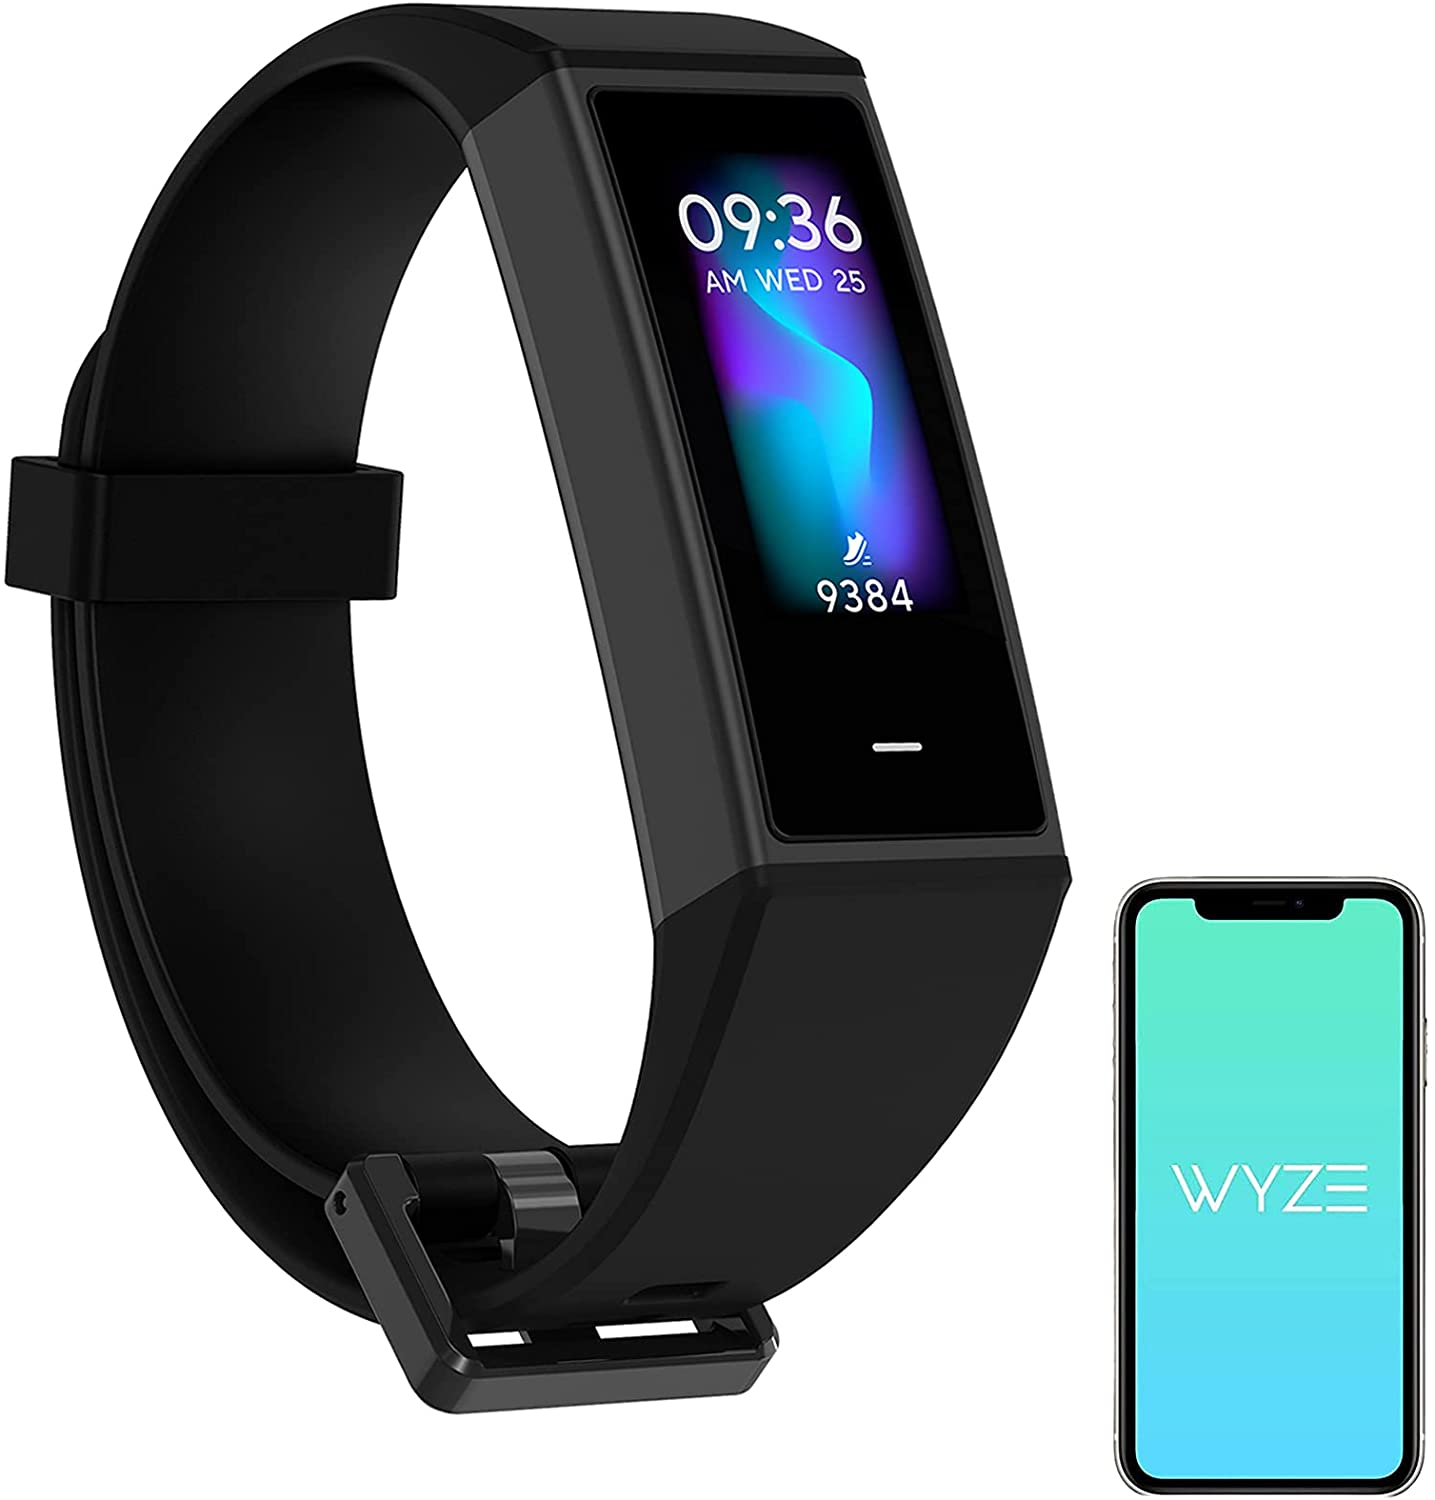 Smart Fitness Trackers Market Growing Popularity and Emerging Trends | Apple, Samsung, Fitbit, Garmin